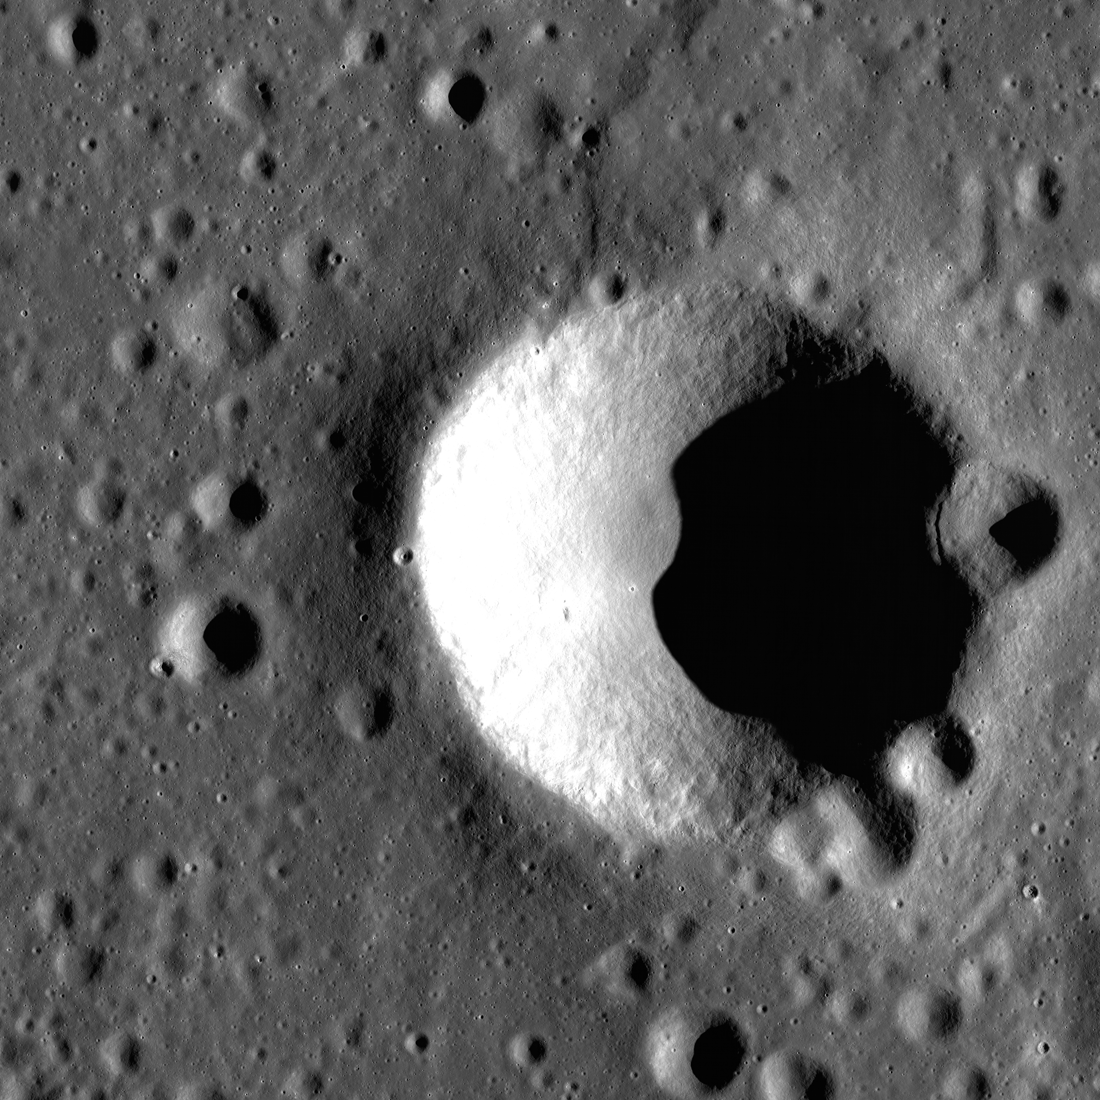 Blagg crater sits astride a wrinkle ridge.